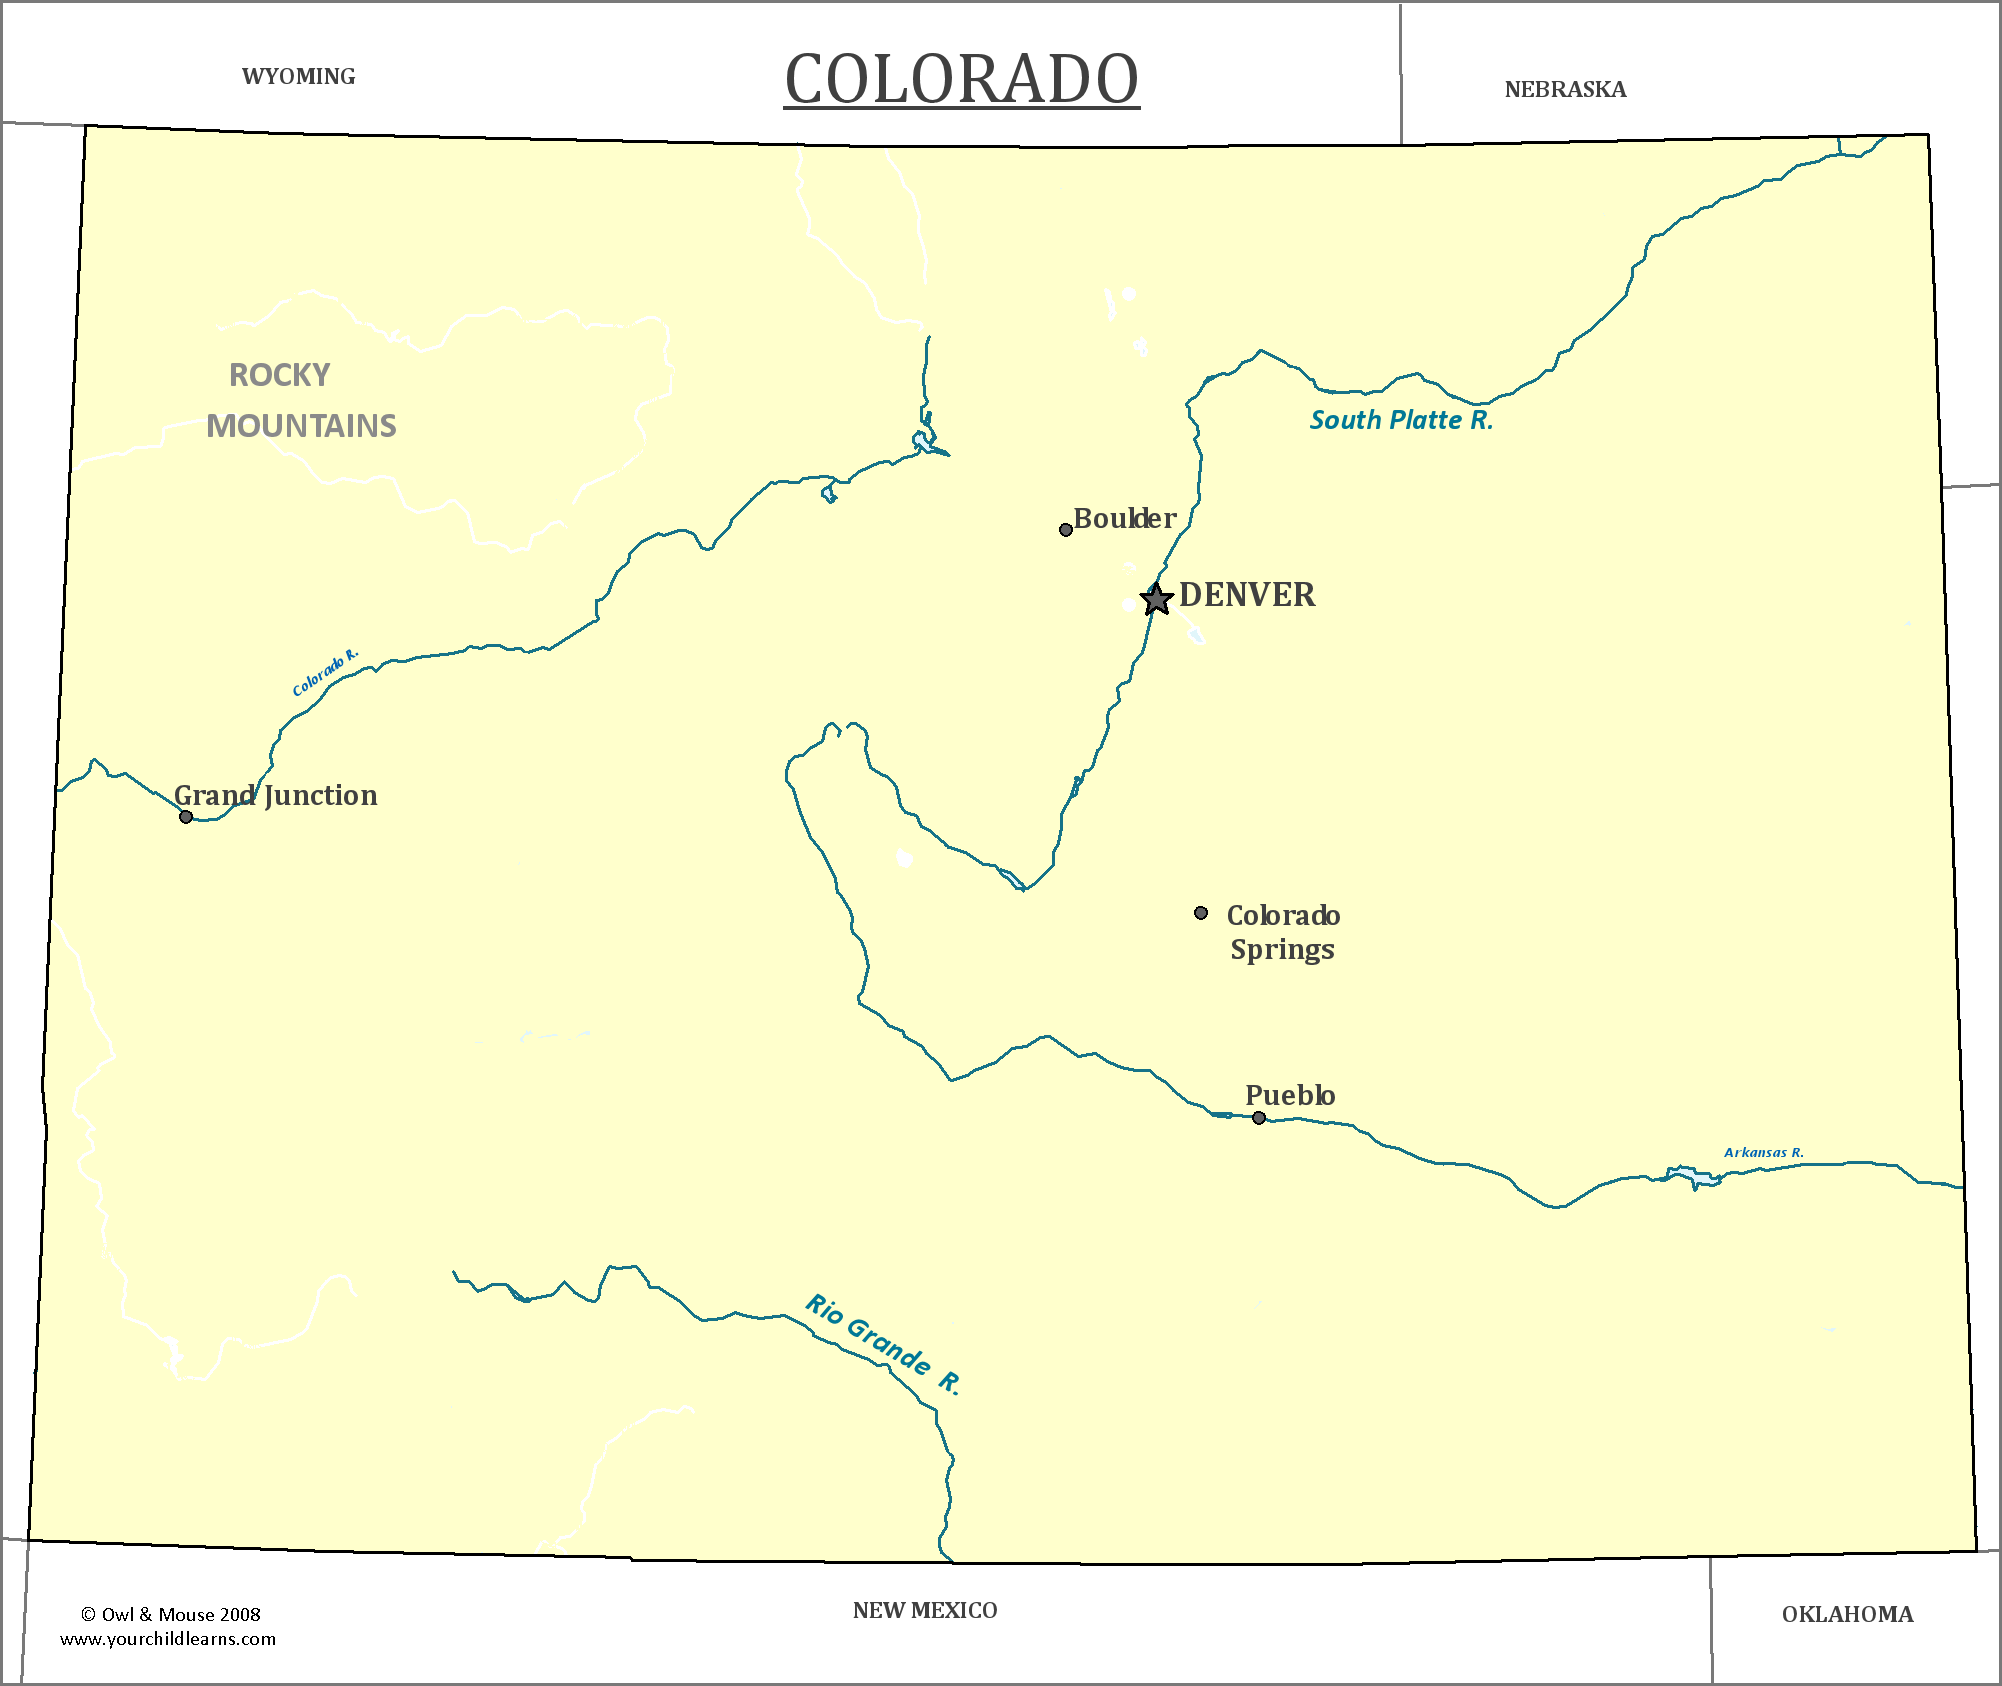 Colorado State Map Map Of Colorado And Information About The State - State map of colorado with cities